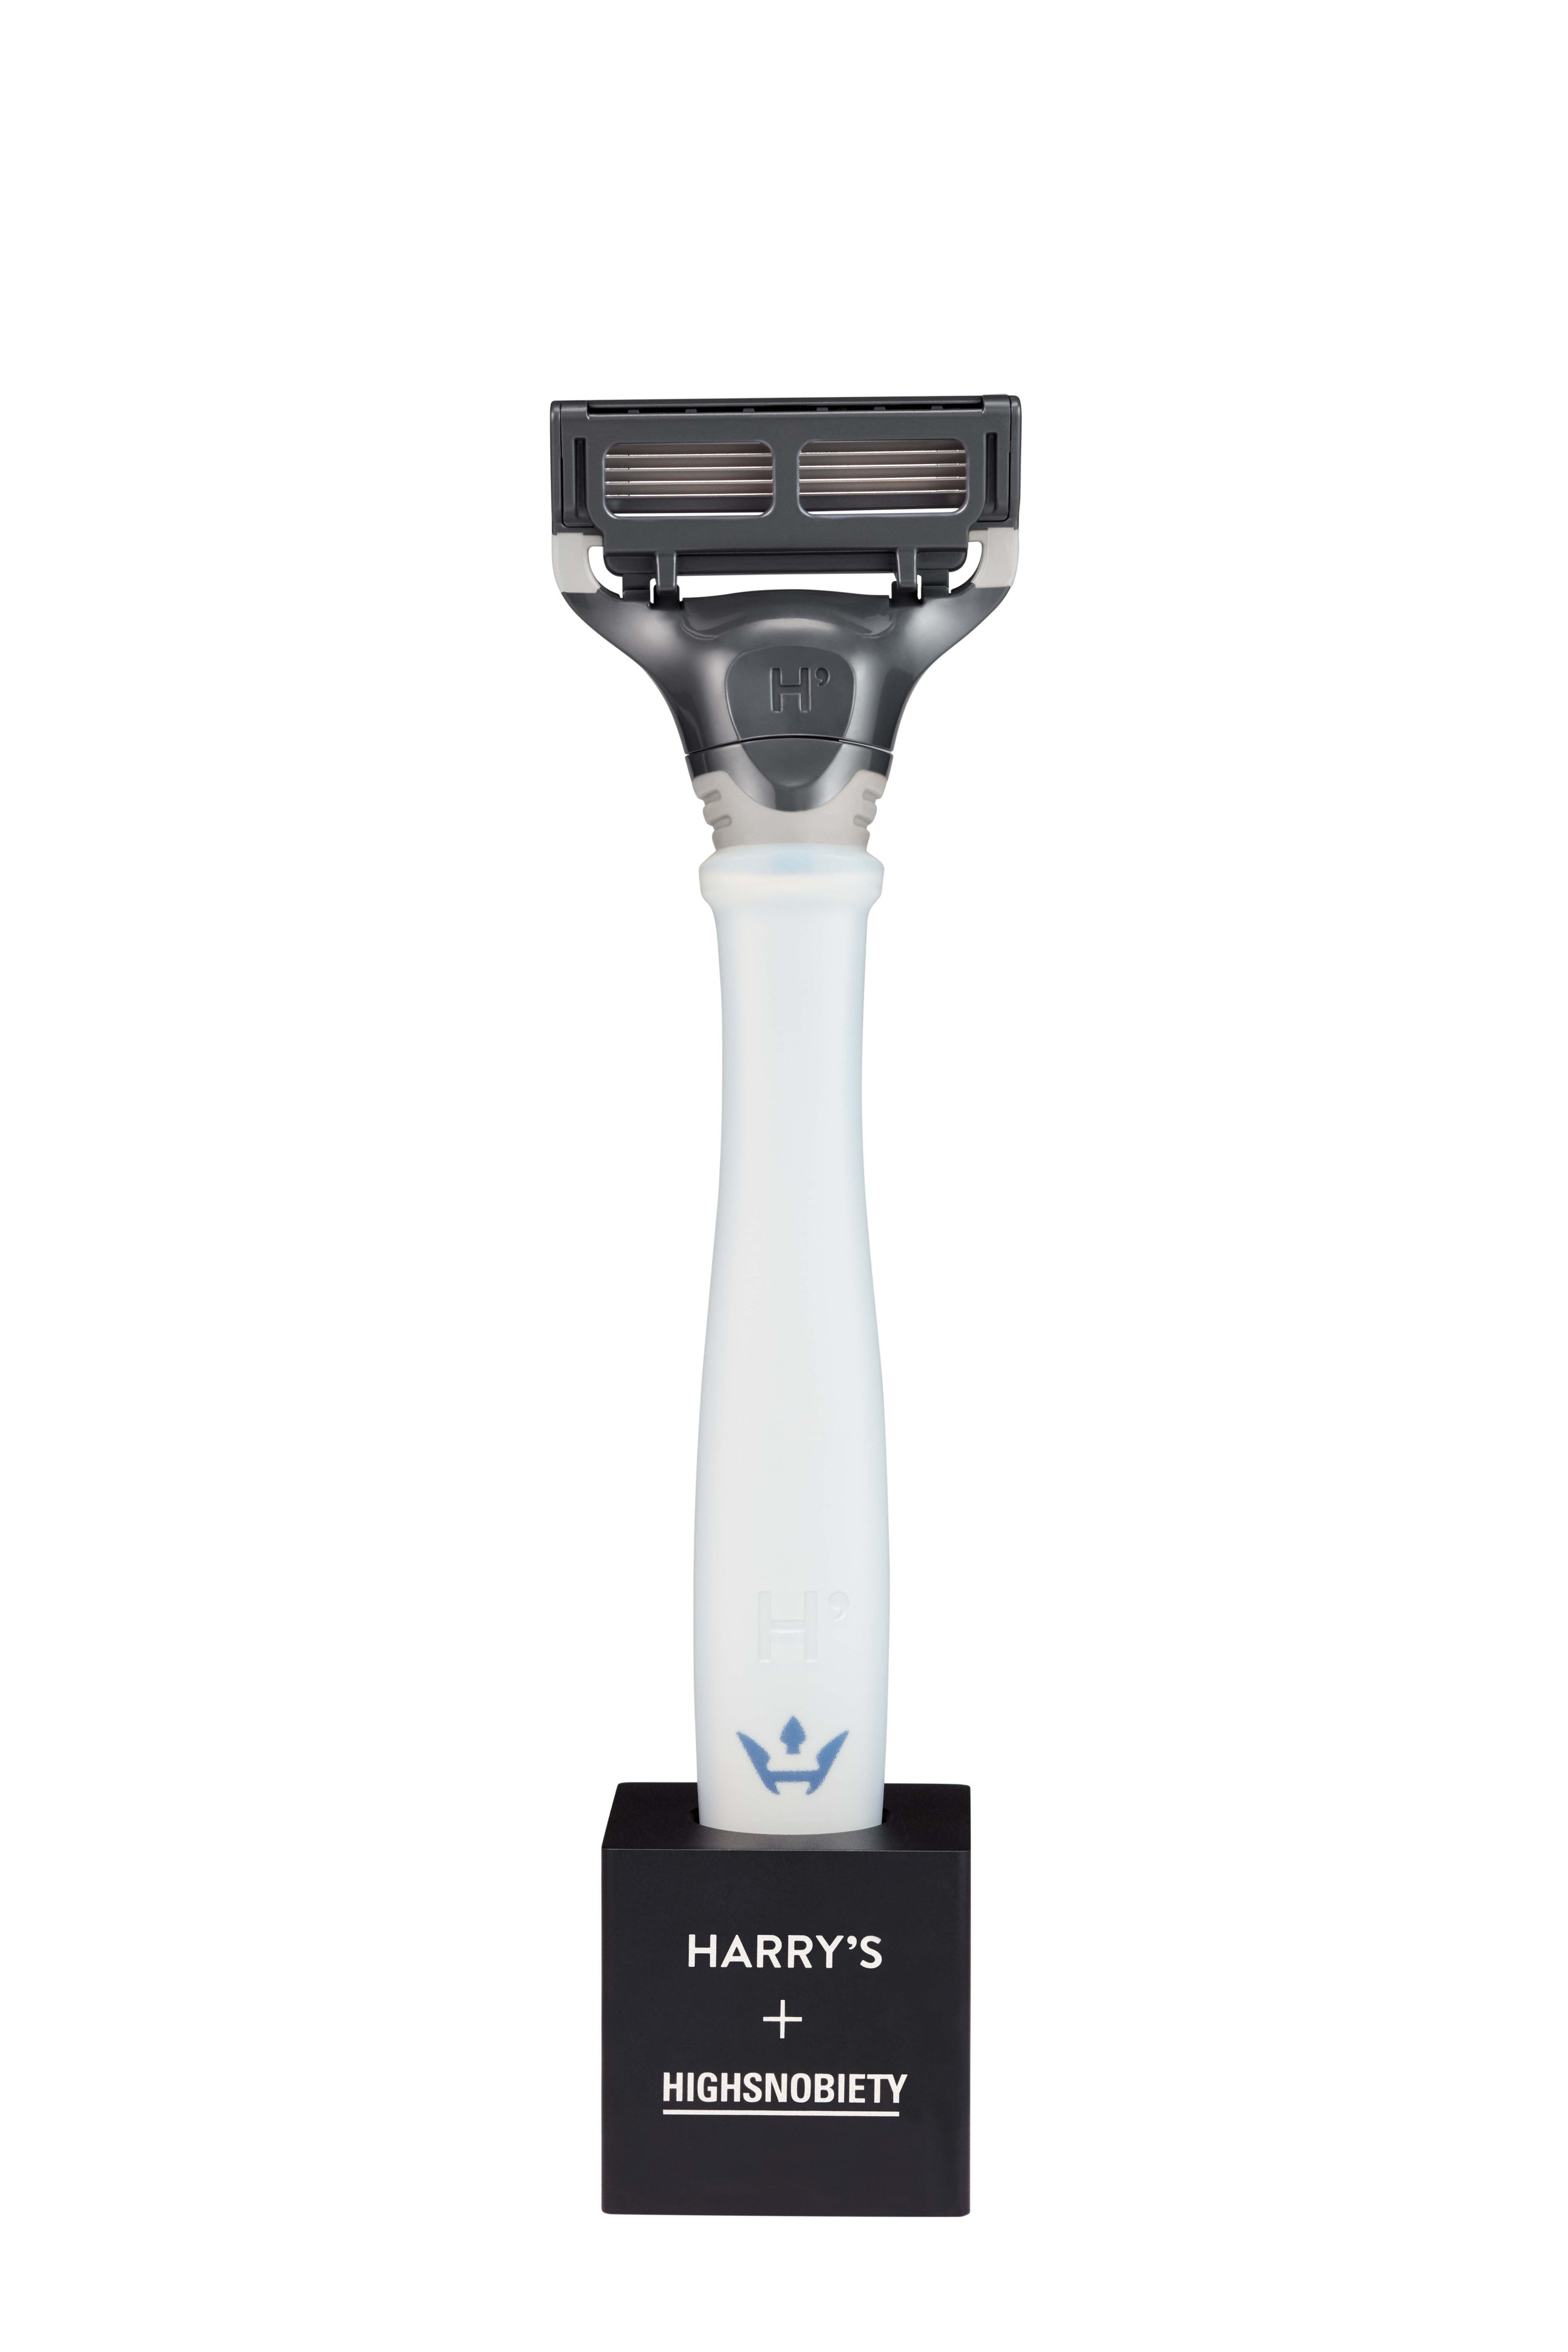 Harry's x Highsnobiety razor - £29 - A rakish upgrade to the signature Truman razor that would look great in your minimalist bathroom